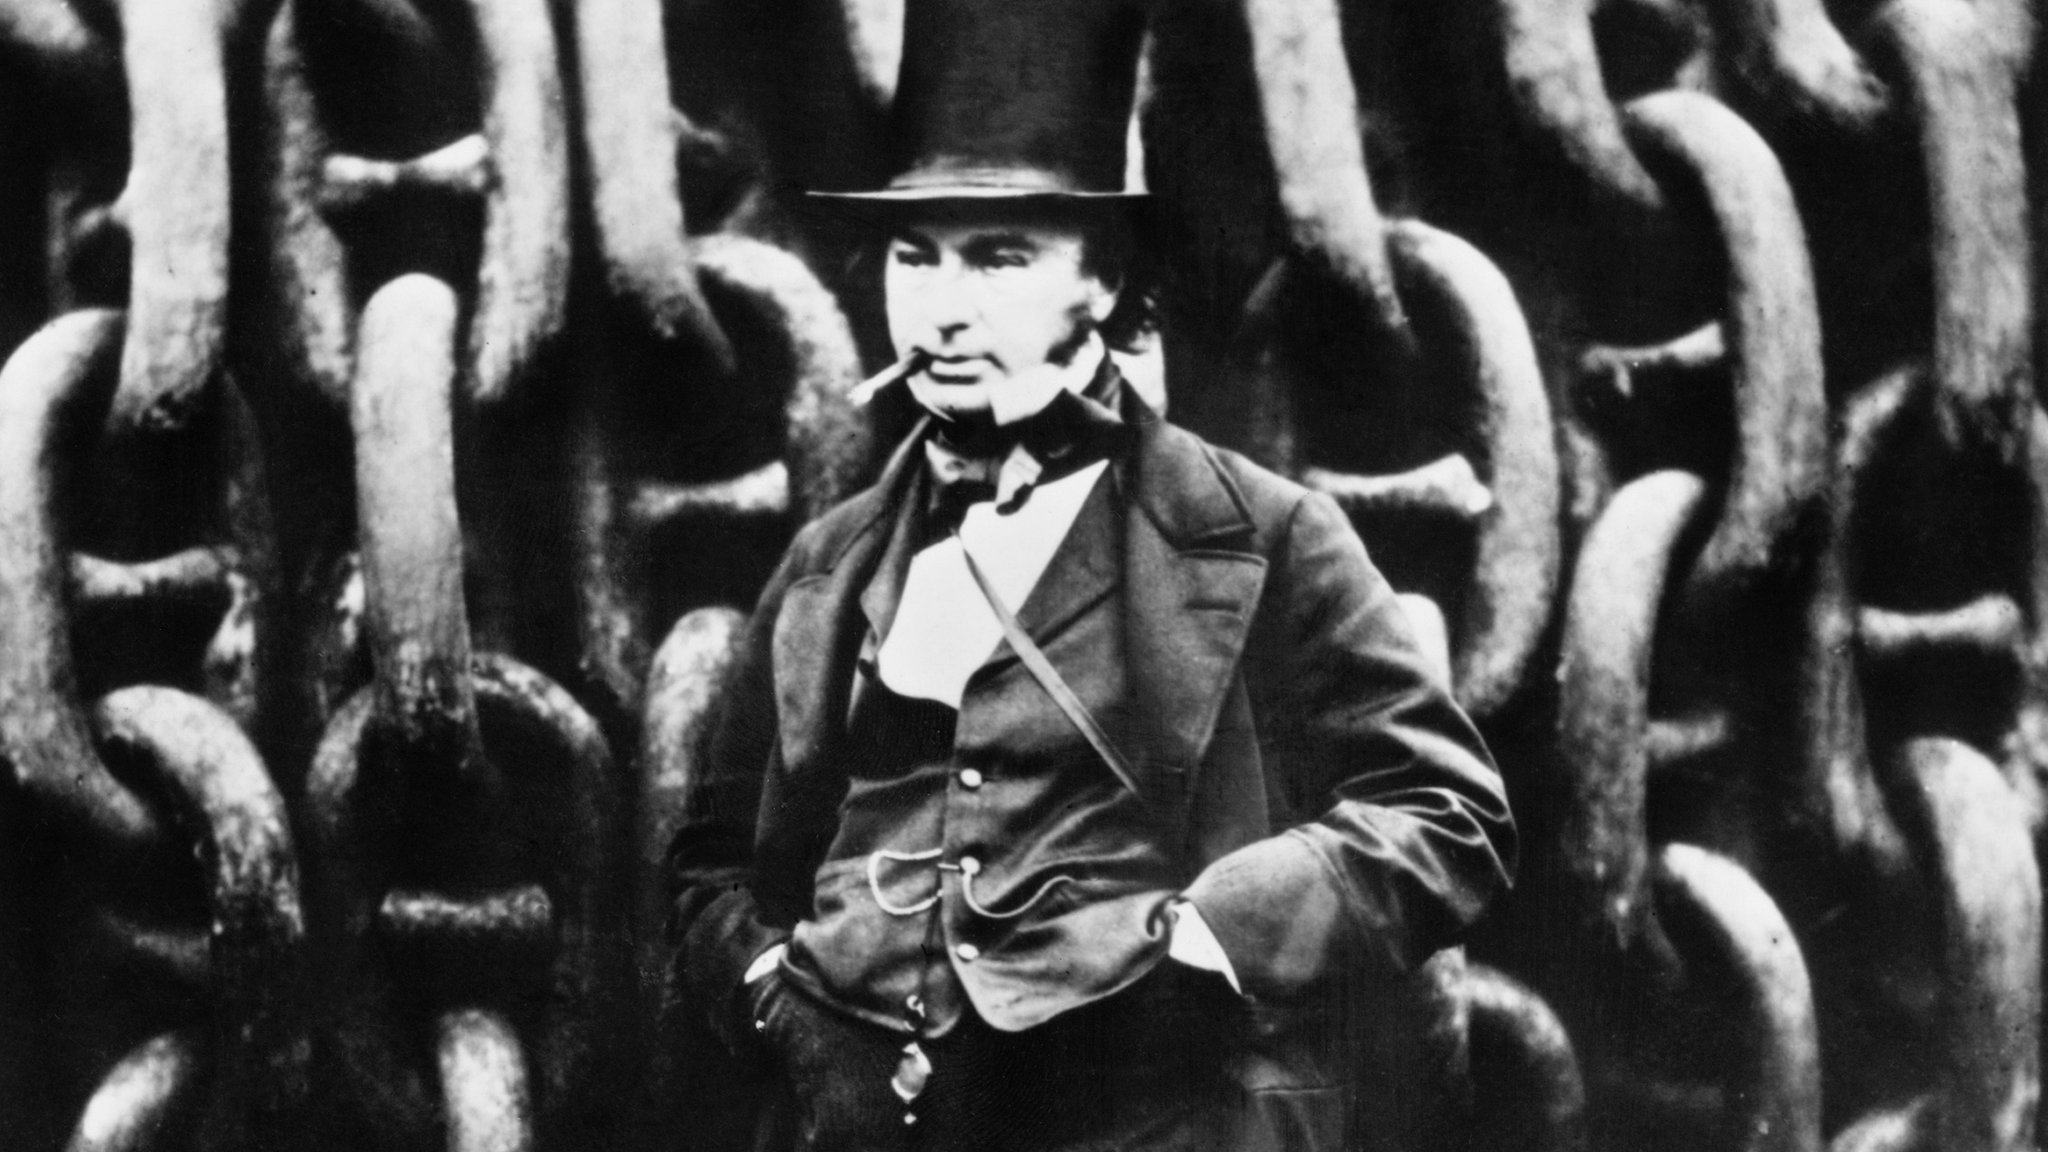 Isambard Kingdom Brunel: The engineering giant with 'short man syndrome'